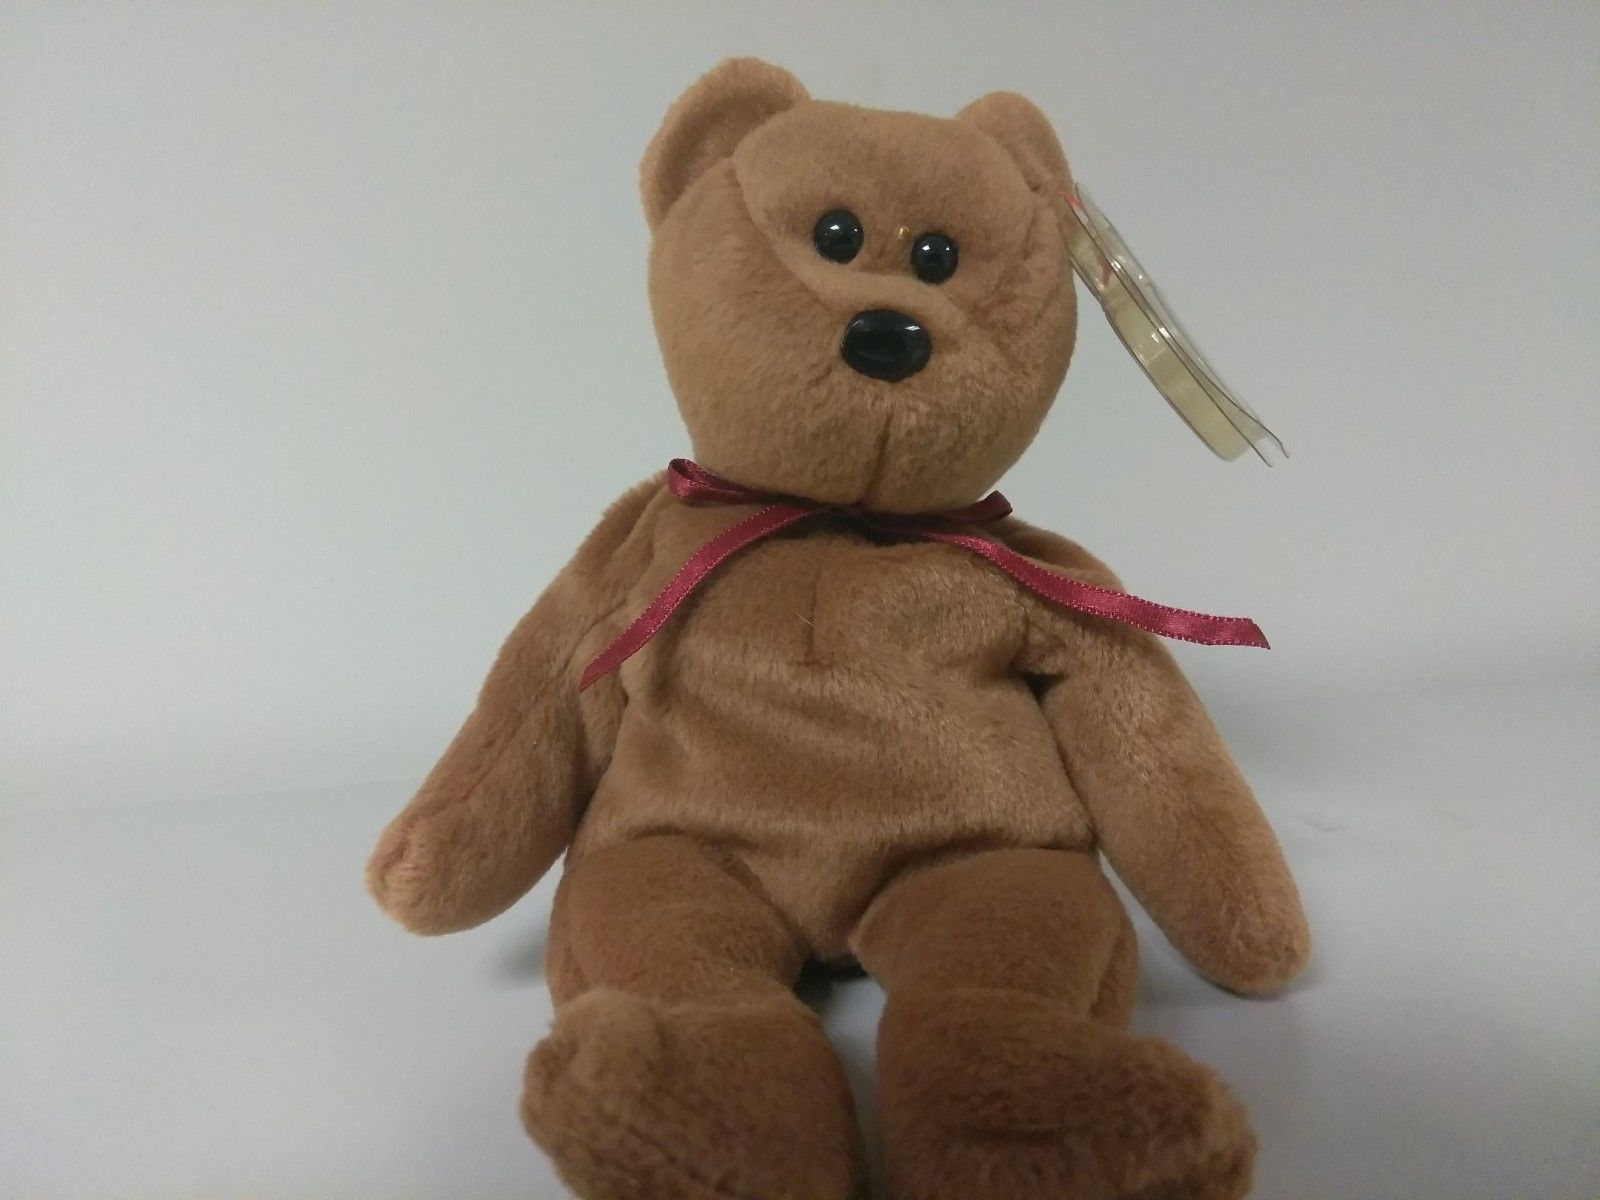 1st Edition TY Beanie Babies Rare Teddy no stamp, PVC and style line